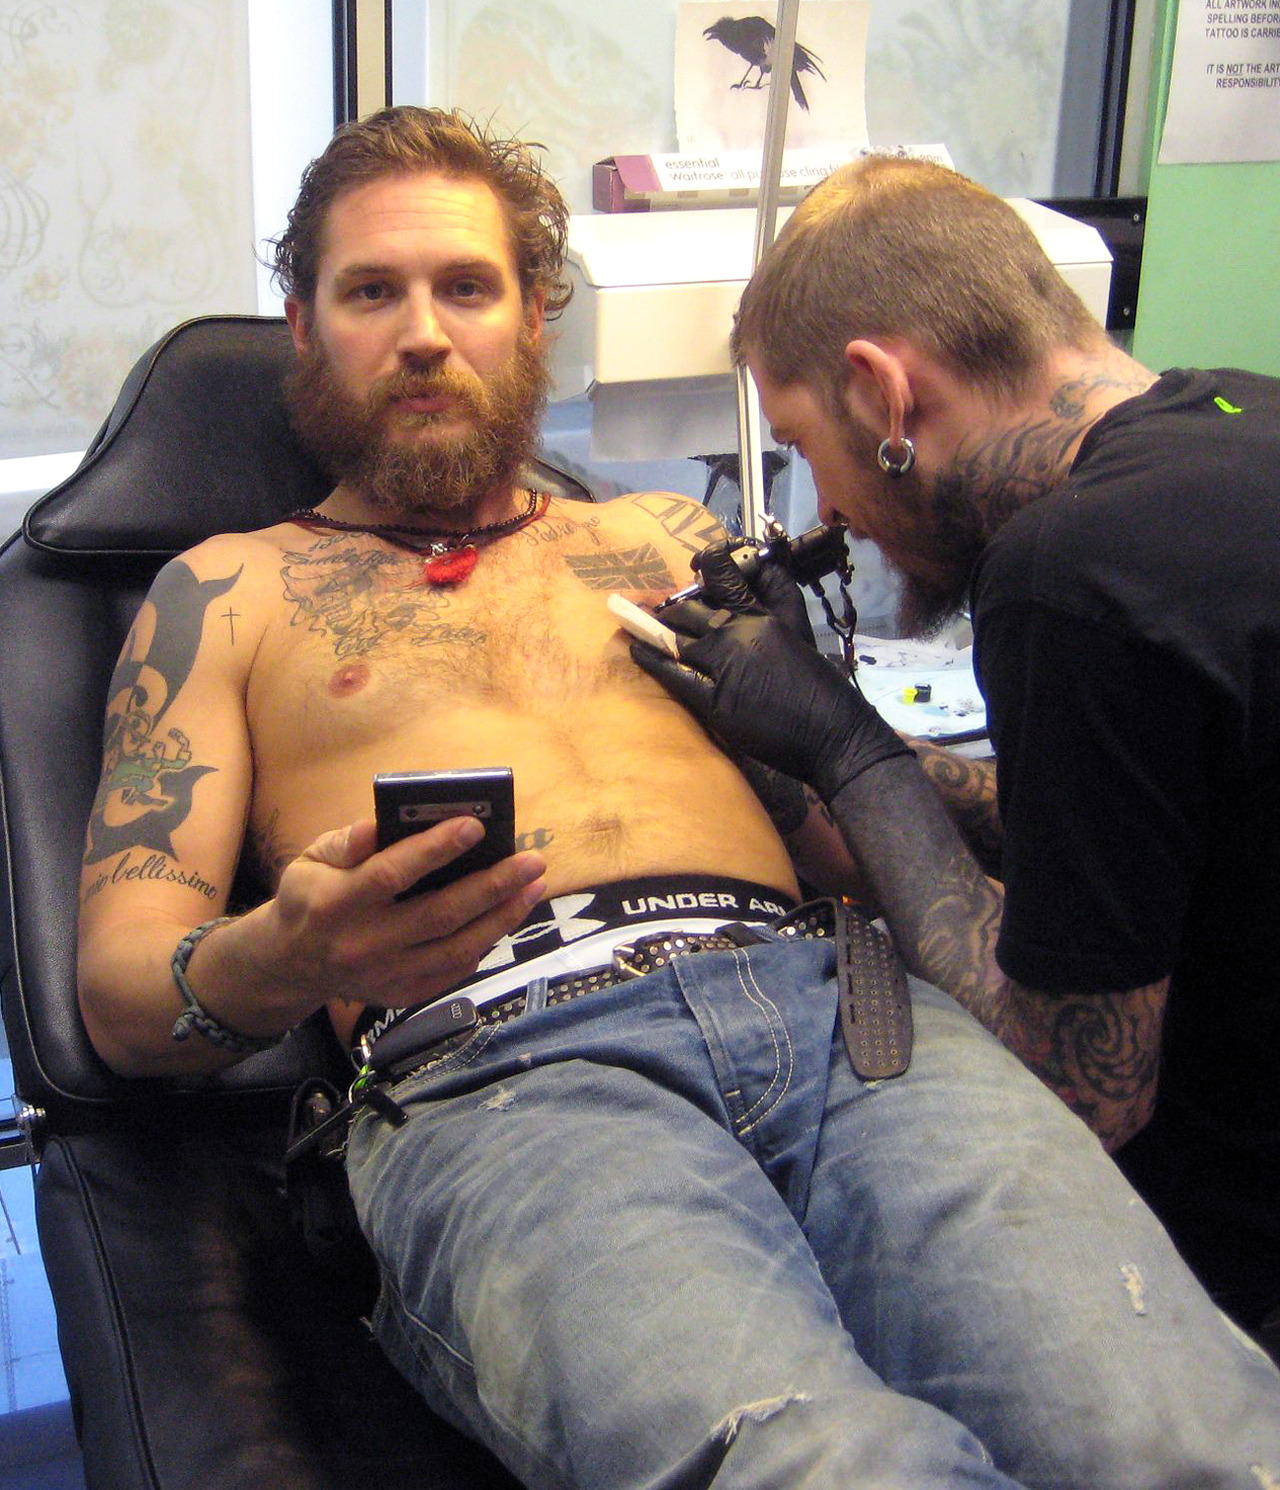 jellysoap:  tomhardyvariations:  hi. xxxxx @Richmond Tattoo studio   TAKE THEM OFF  There are secrets hidden in that beard just waiting to be discovered.